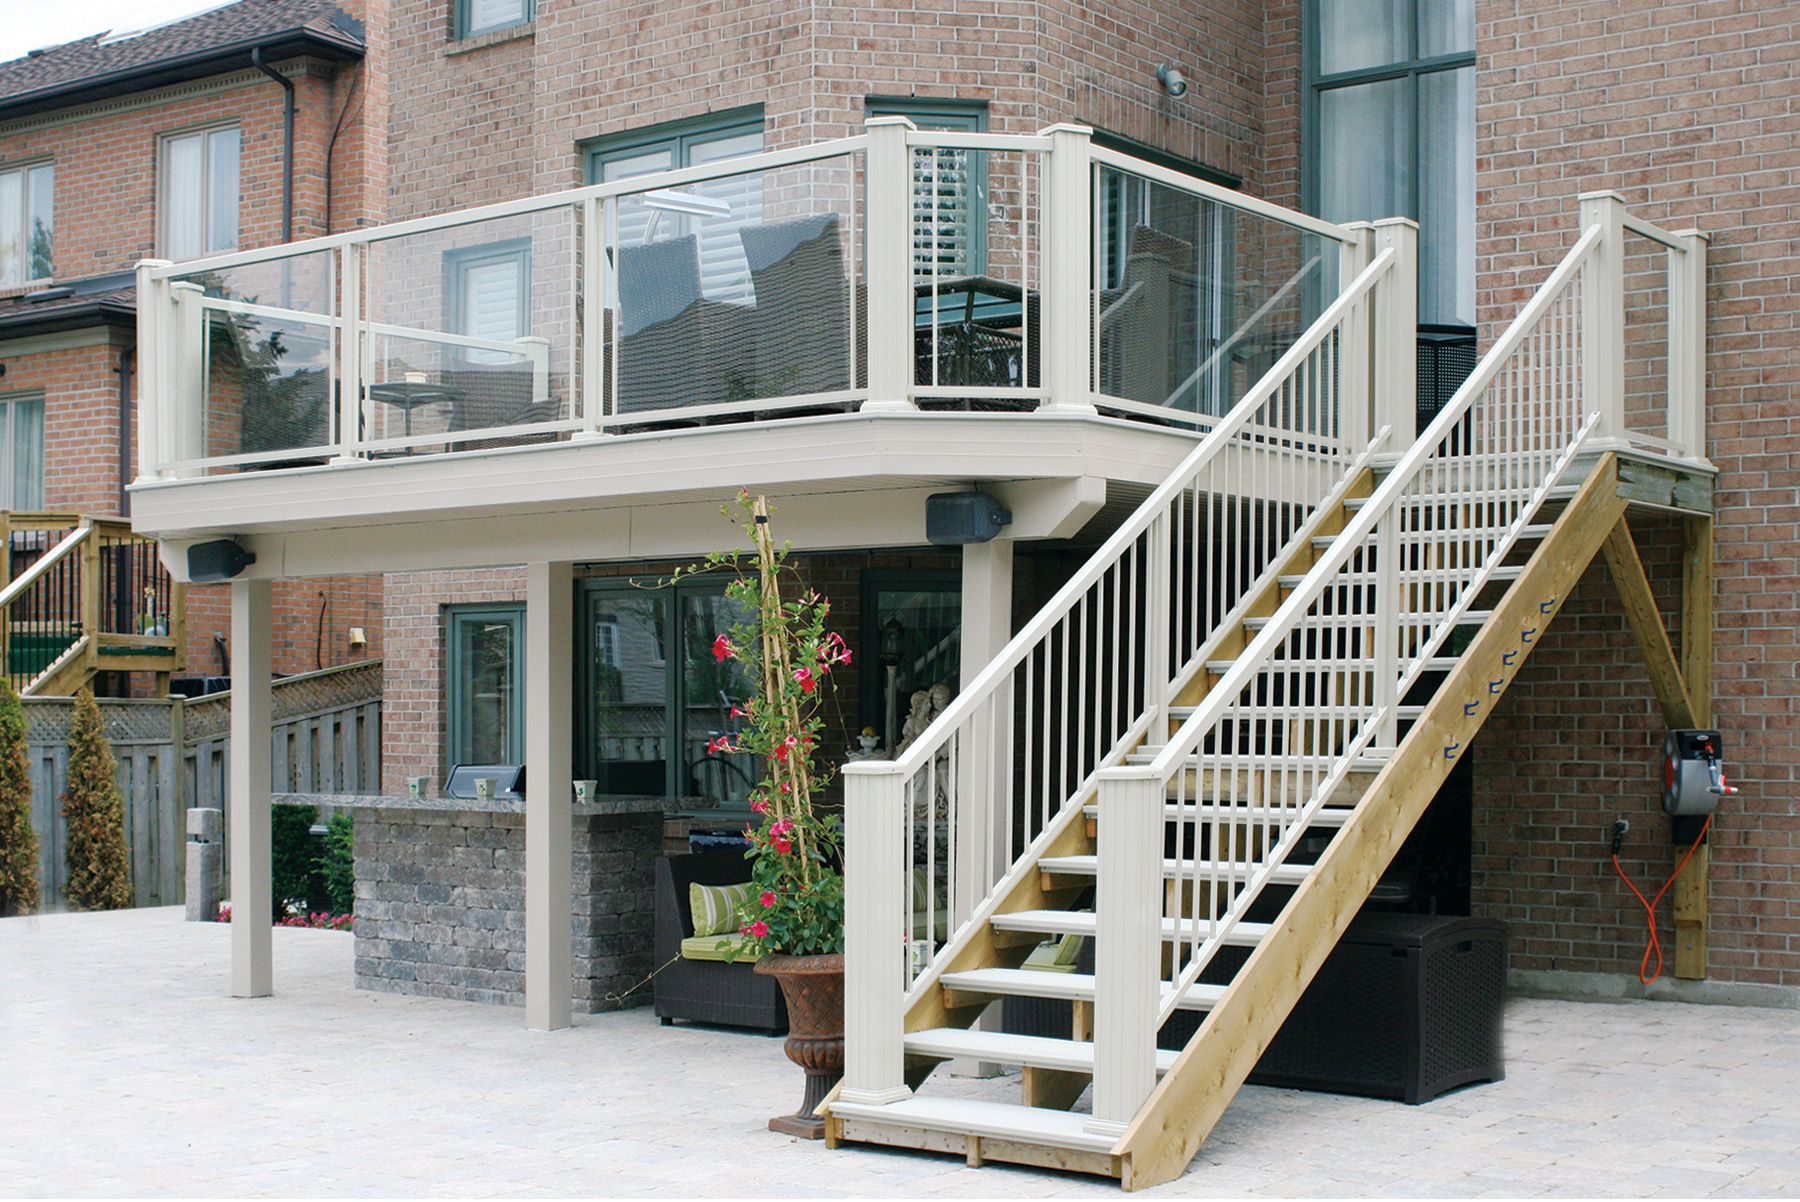 Aluminum deck boards will outlast anyother material, forget about composites and vinyls that degrade over time, are soft and expand/contract with temperature. Water tight aluminum decking is perfect for patio, docks, decks, porches and balconies. Out high tech powder coat finish with imbedded crumble ensures a truly non-skid deck surface.